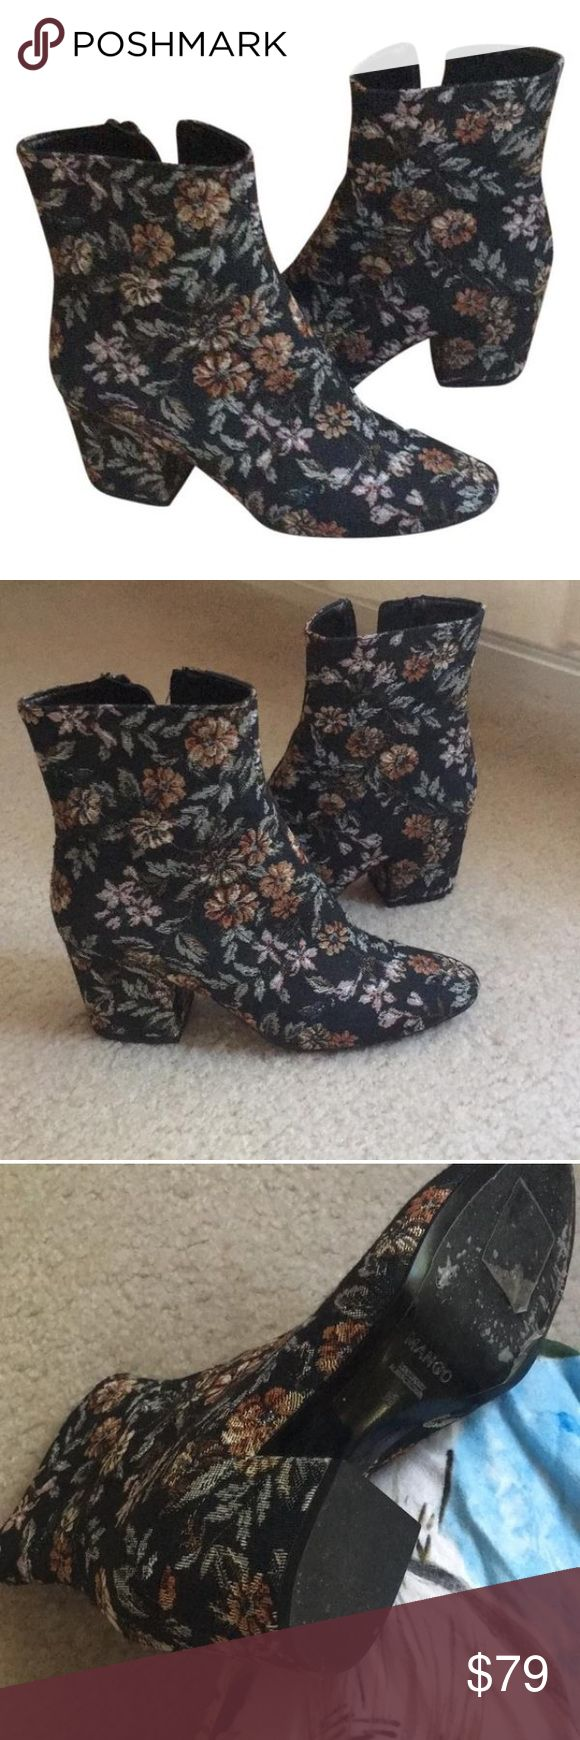 Mango boots Worm one hour! Size 36 made in Spain! Super cute Boothies Mango Shoes Ankle Boots & Booties